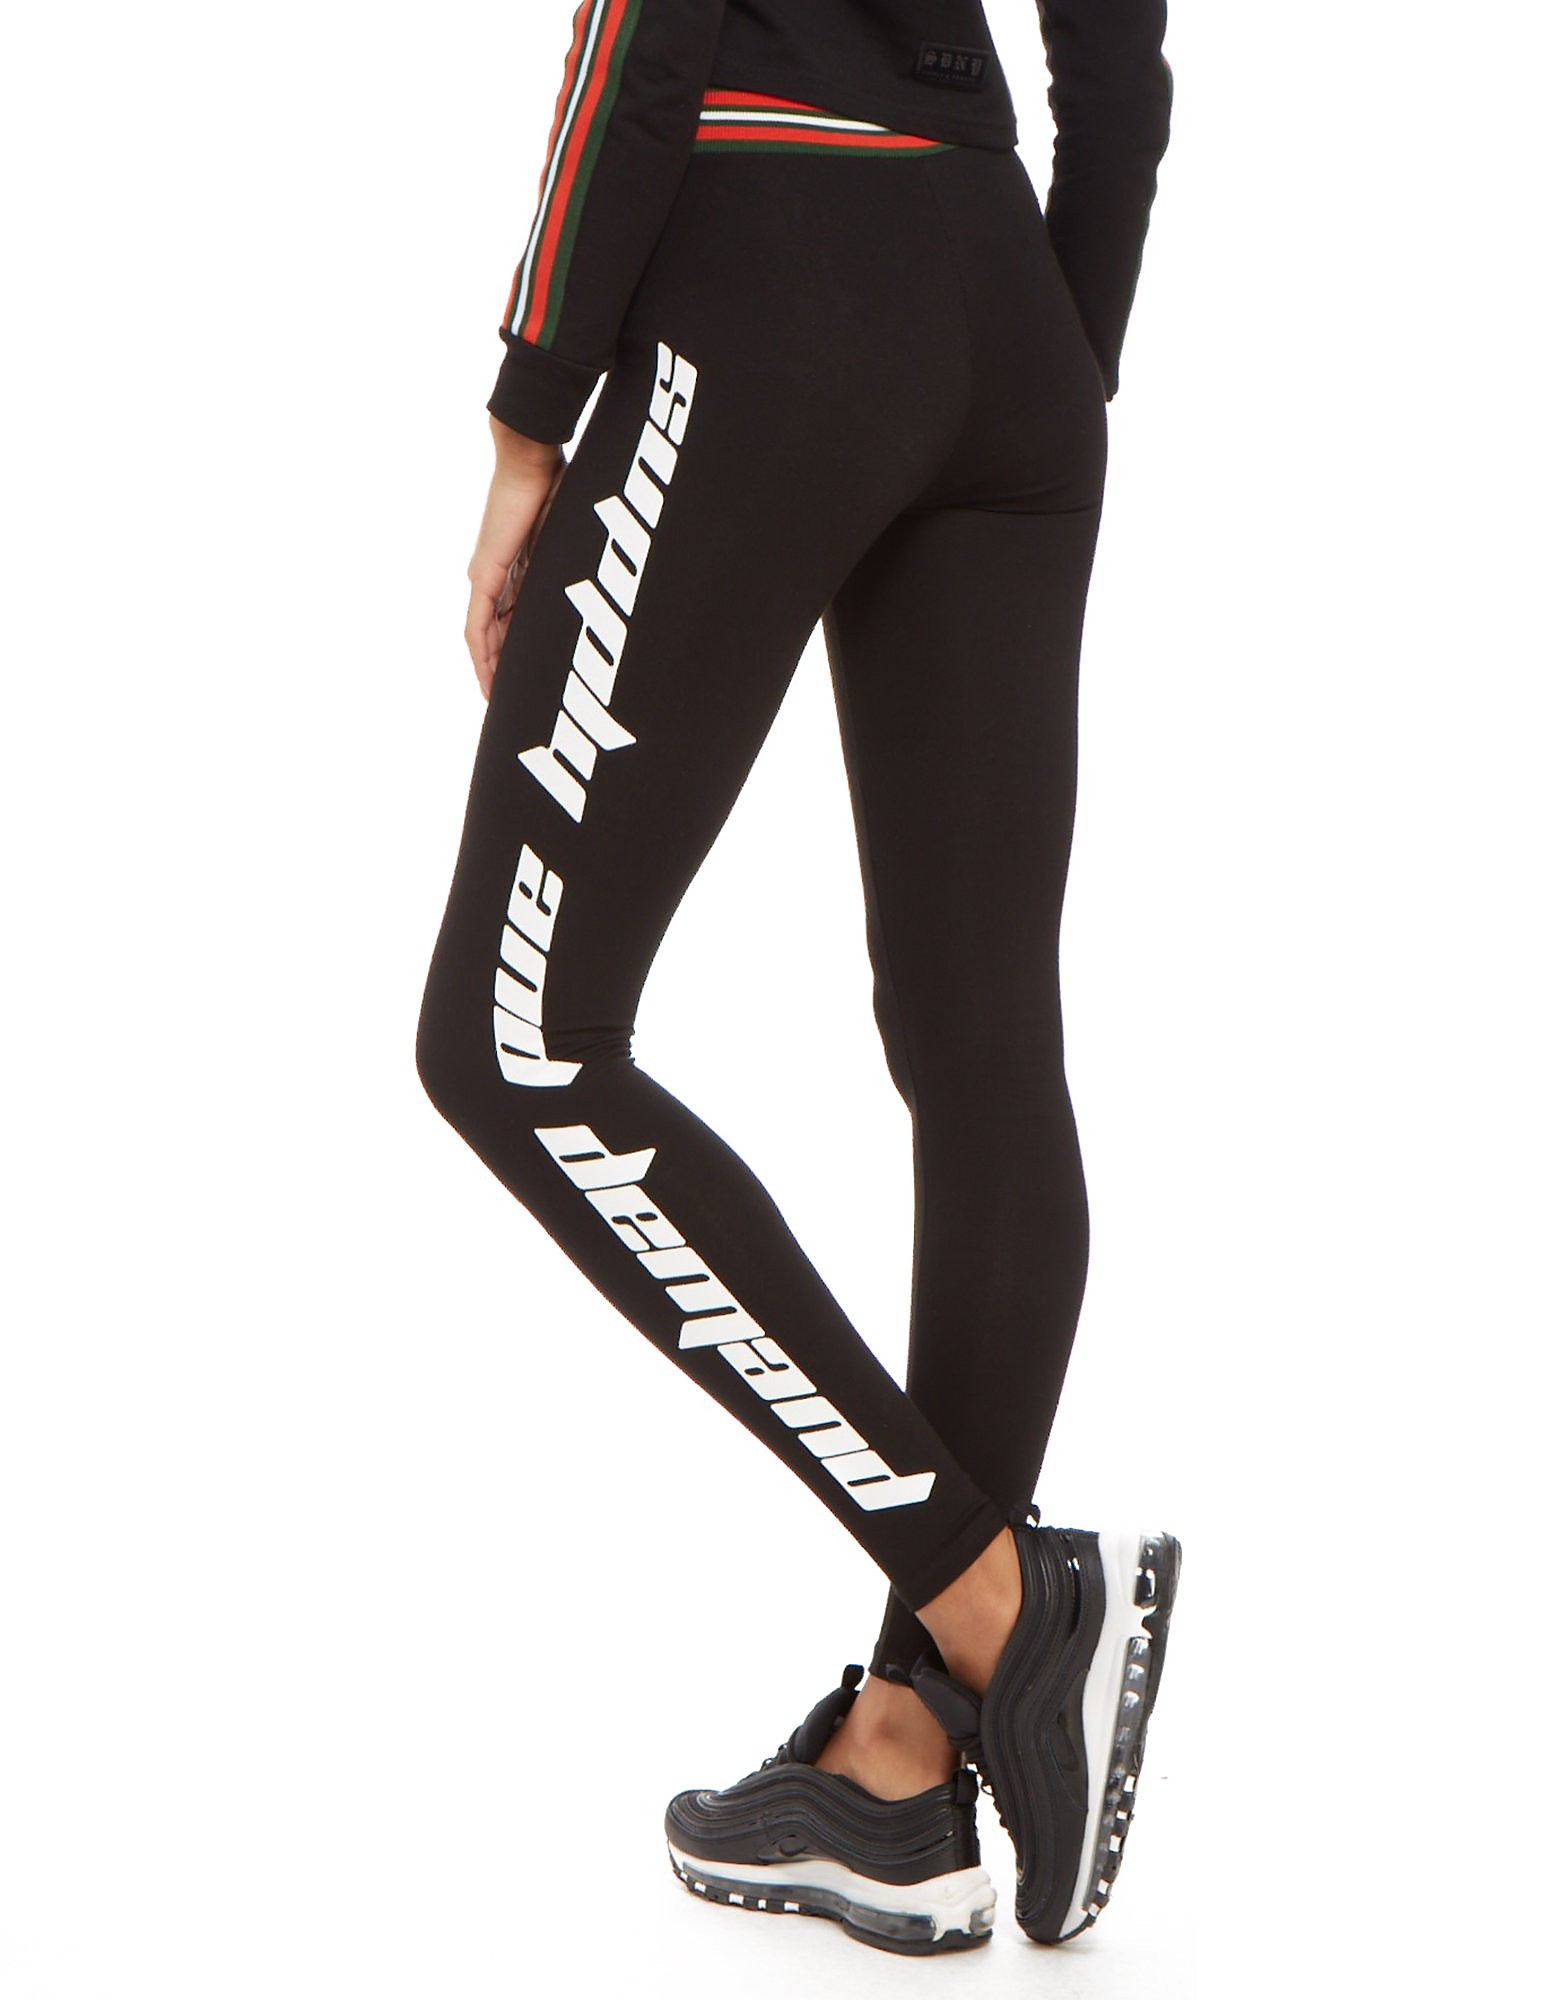 Supply & Demand Tape Leggings